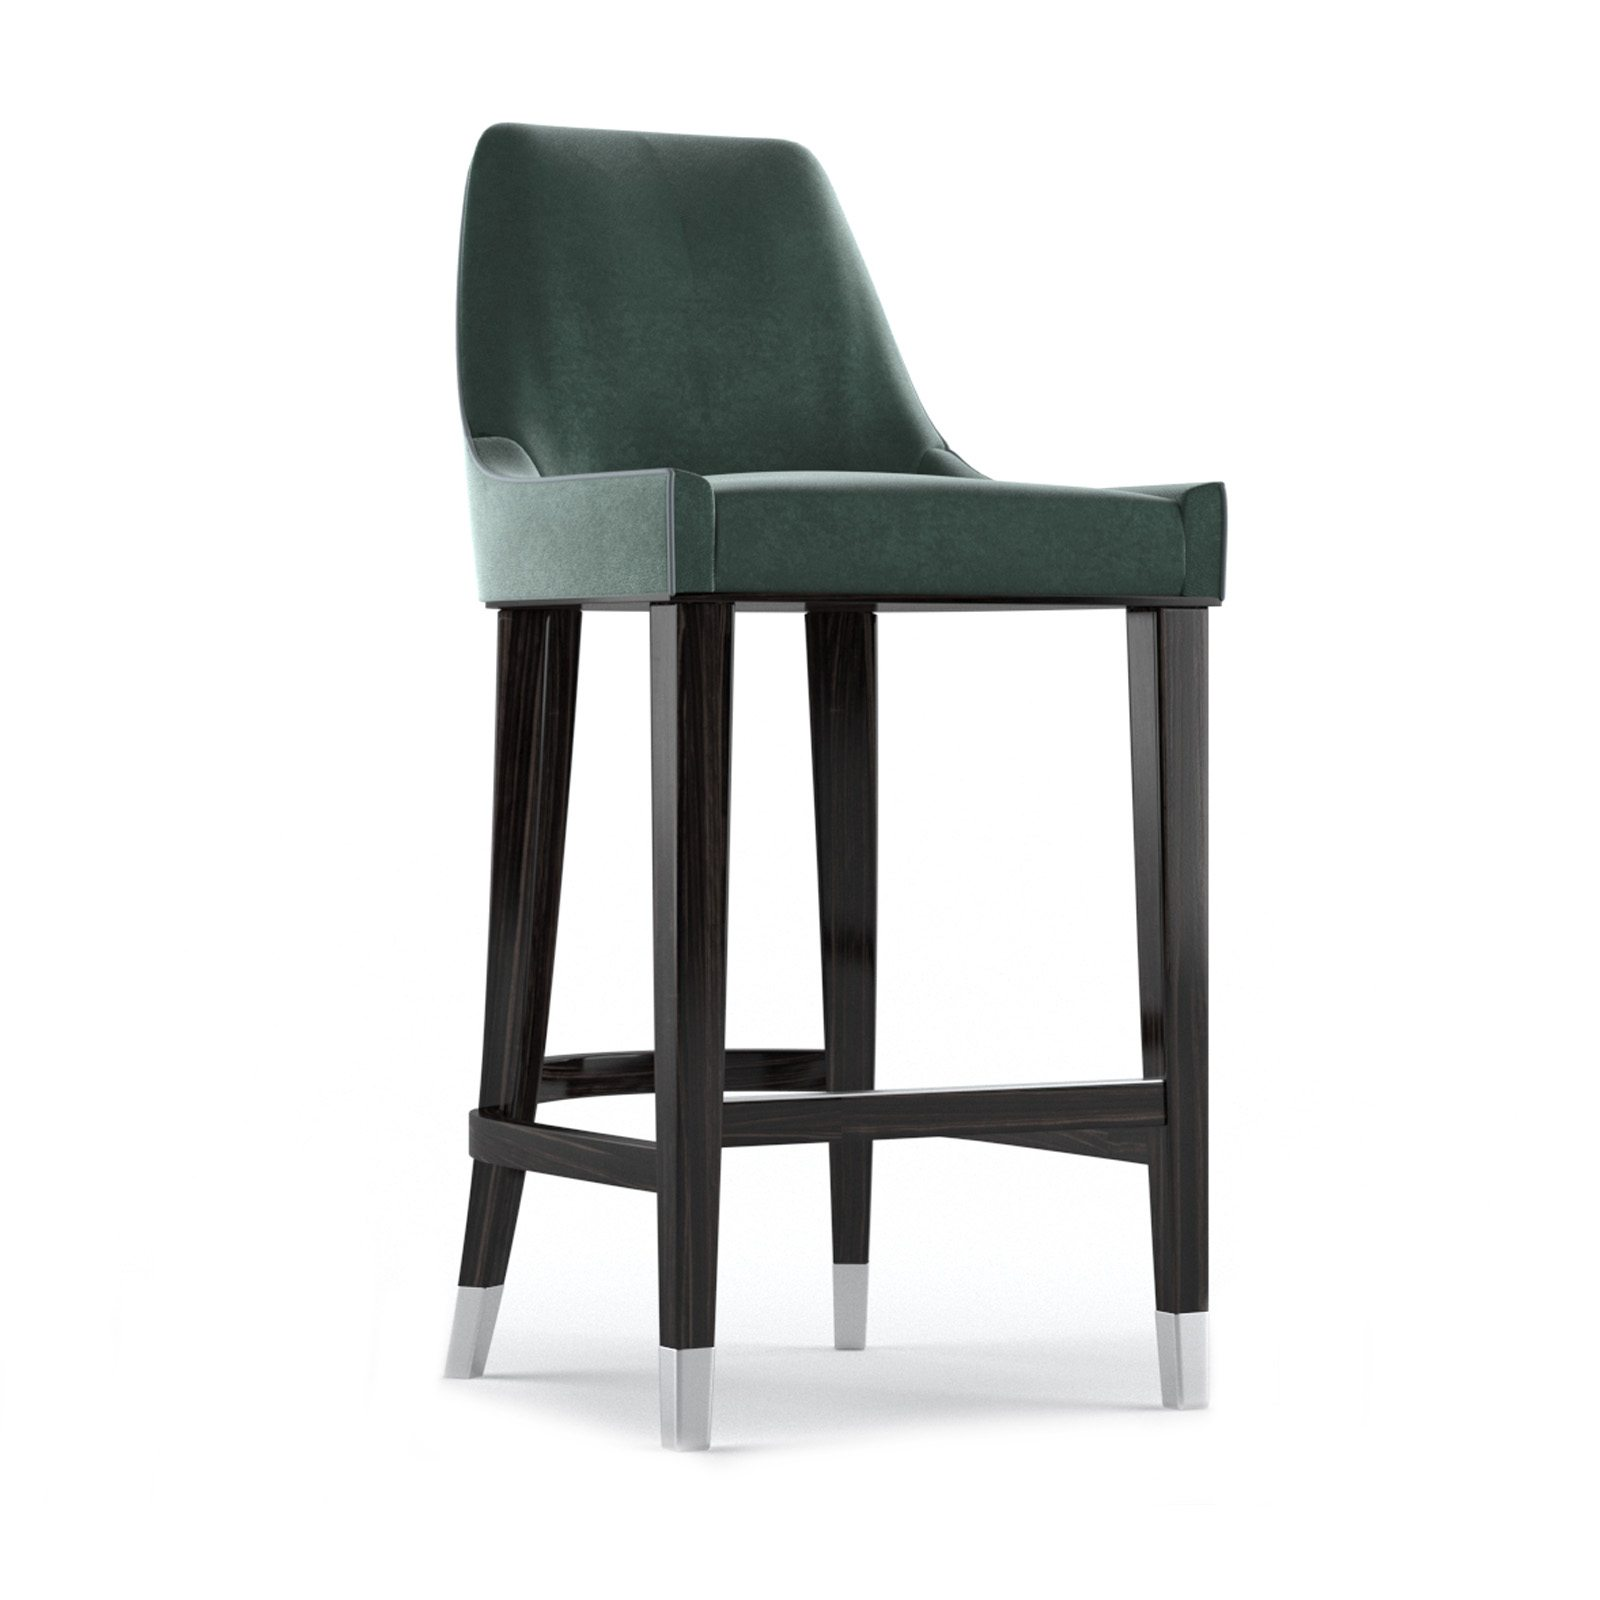 Balfour-Bar-Stool-by-Bonham-&-Bonham-12